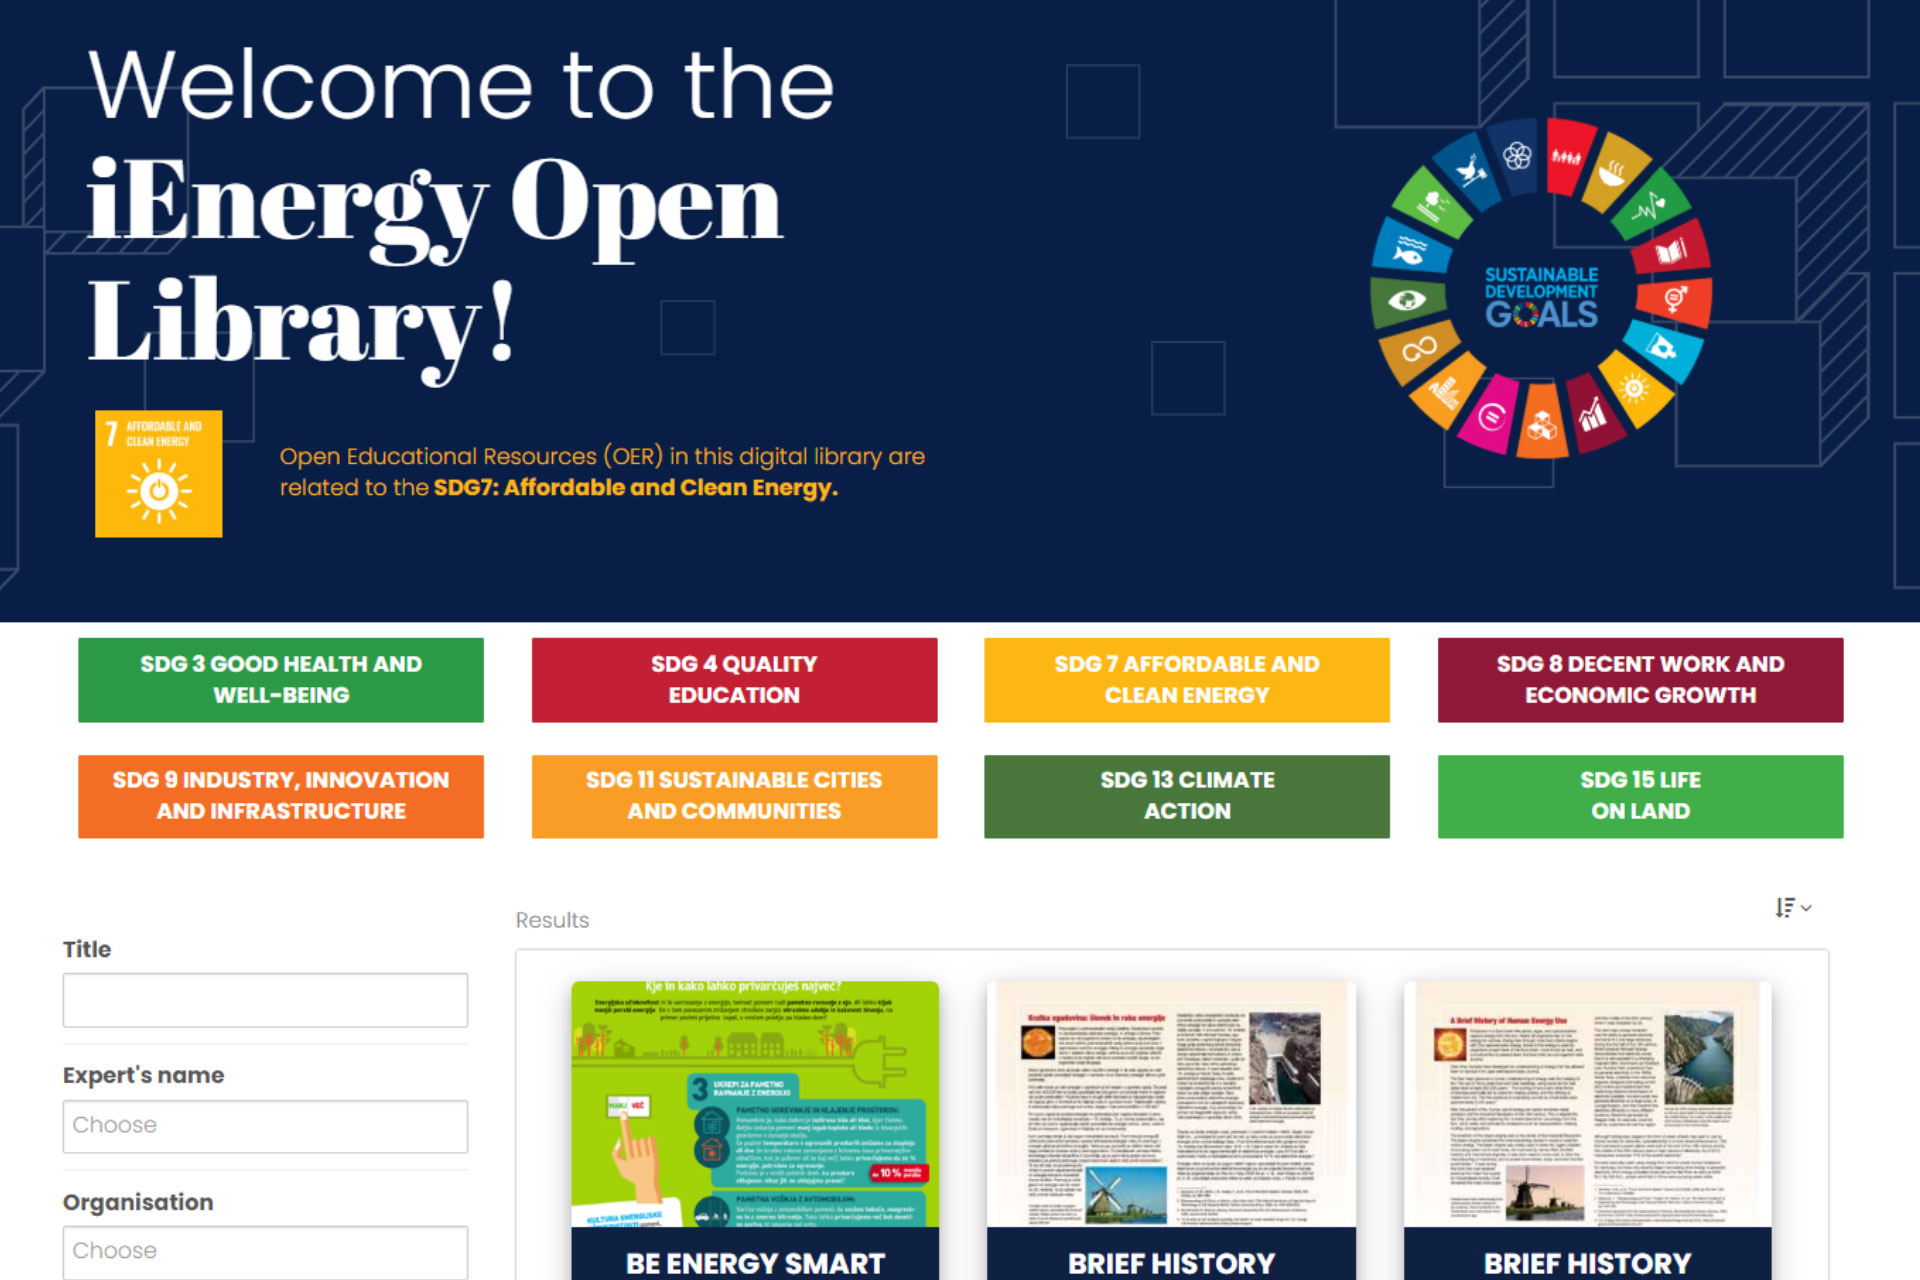 ienergy-open-library